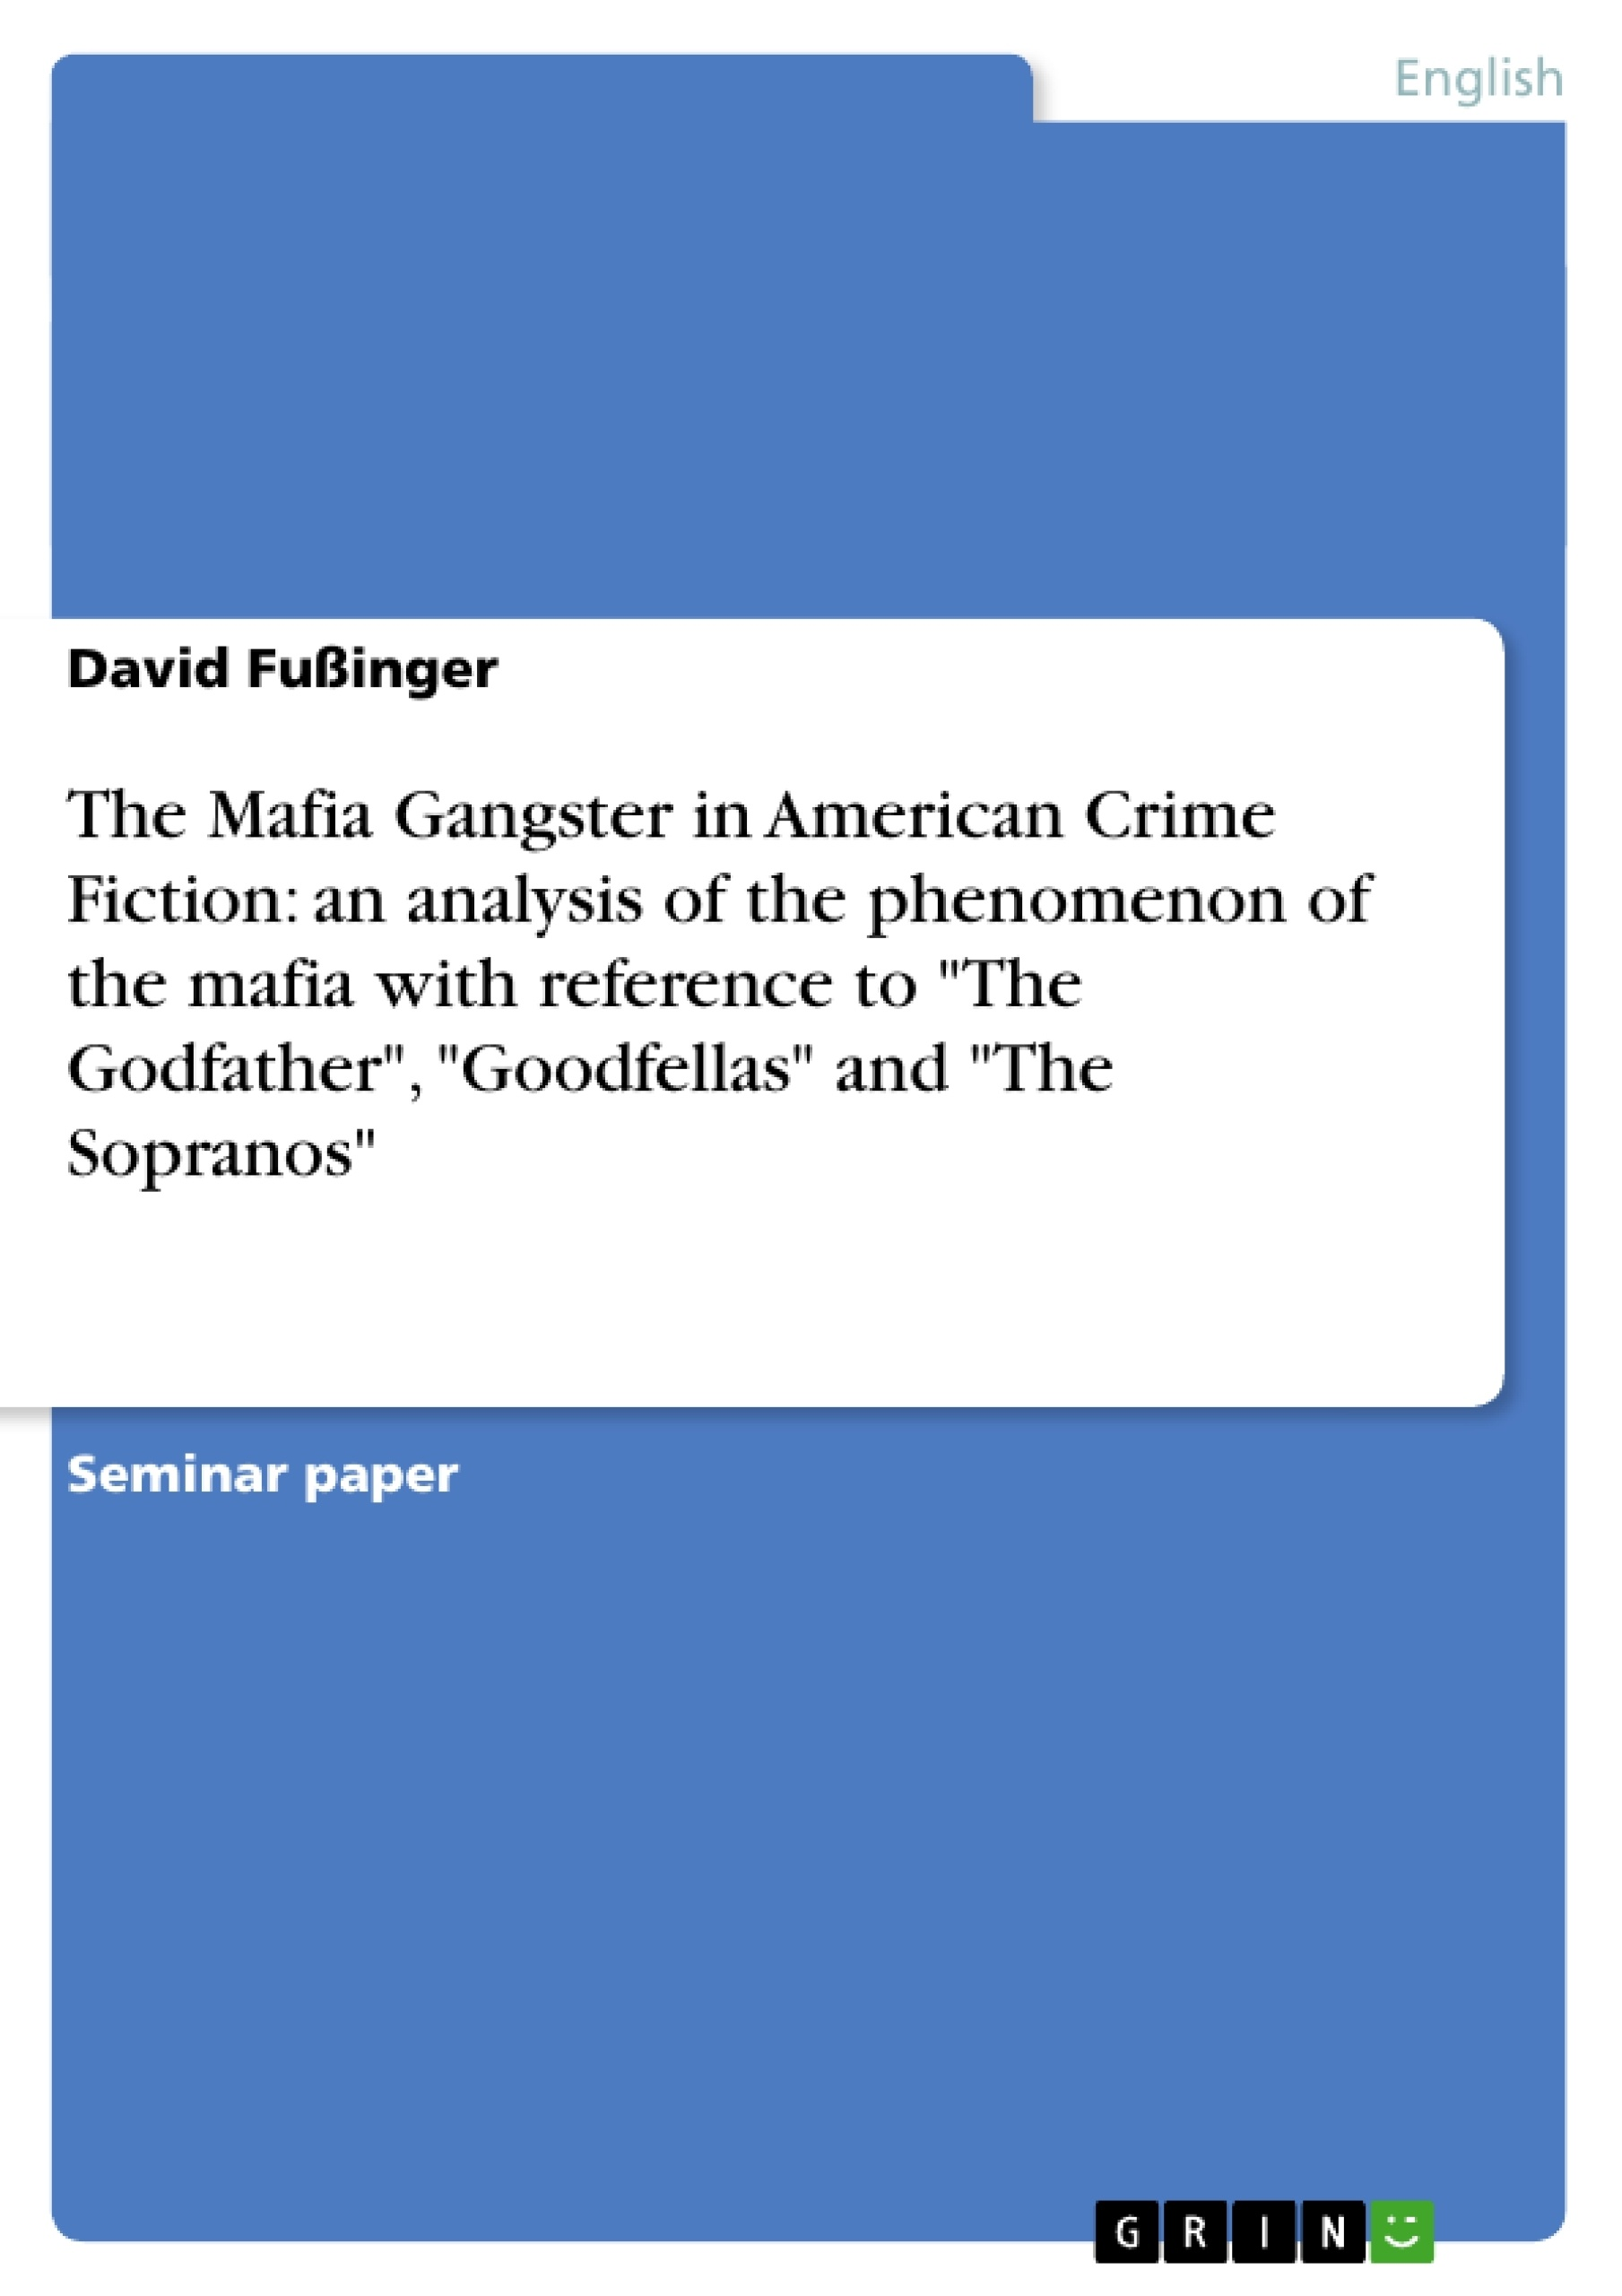 Contemporary lit Godfather term paper?